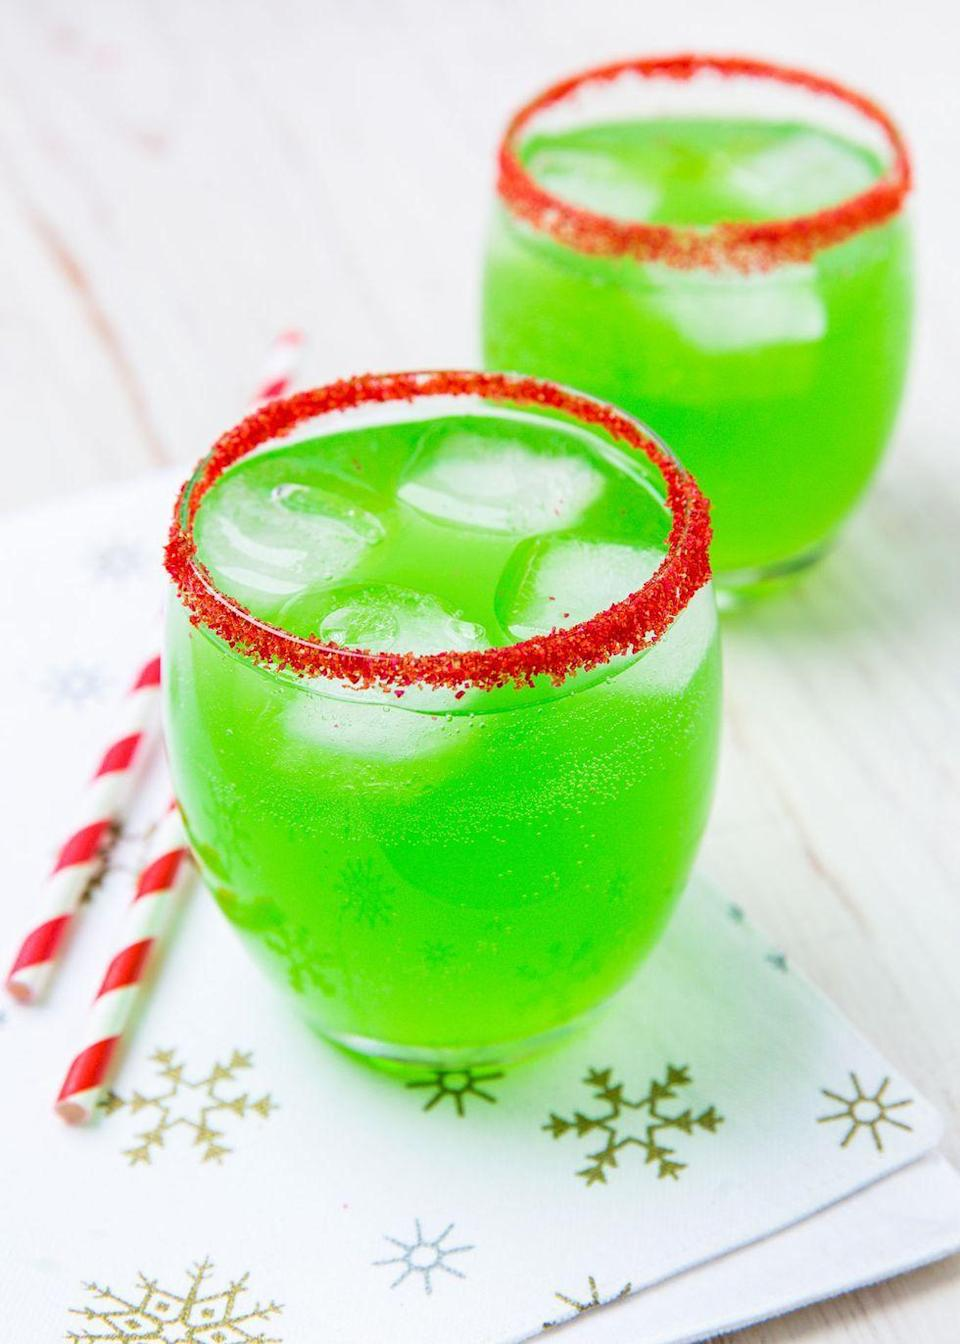 """<p>Get into the festive mood with these bright green cocktails!<br></p><p>Get the recipe from <a href=""""https://www.delish.com/holiday-recipes/christmas/a29813140/spiked-grinch-punch-recipe/"""" rel=""""nofollow noopener"""" target=""""_blank"""" data-ylk=""""slk:Delish."""" class=""""link rapid-noclick-resp"""">Delish.</a></p>"""